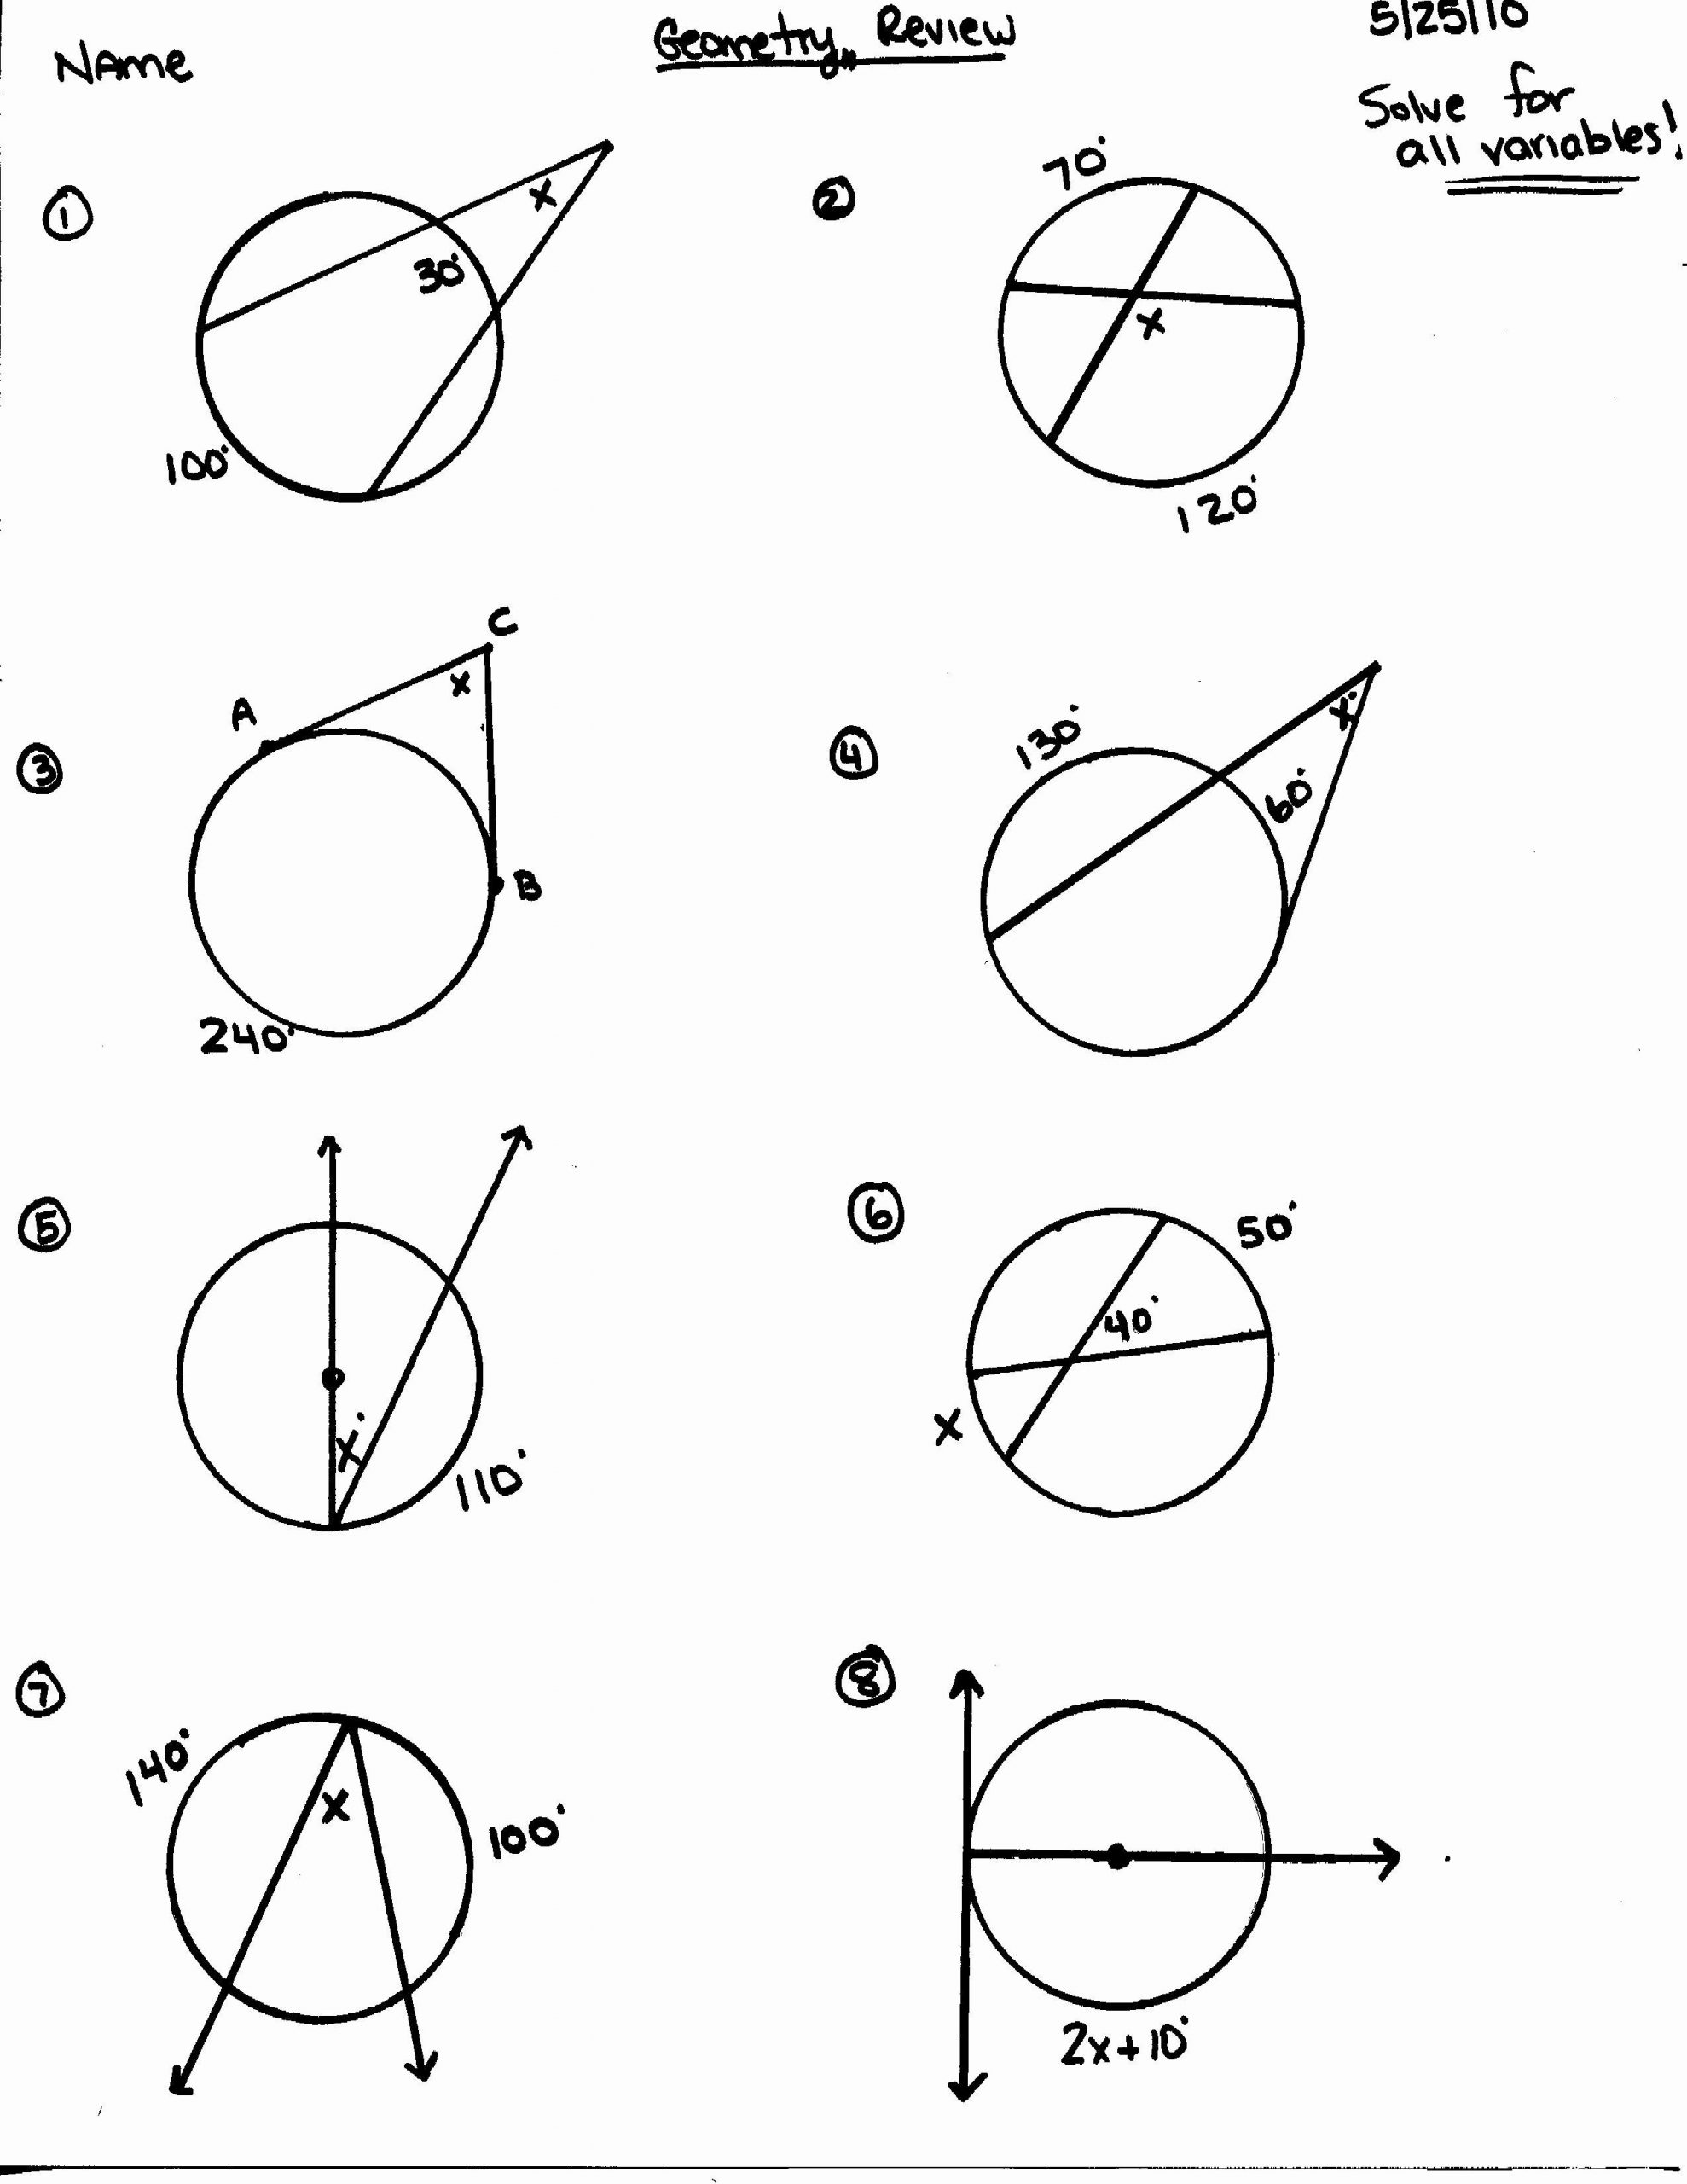 Angles In A Circle Worksheet Angles In A Circle Worksheet Lovely Circle theorems Match Up